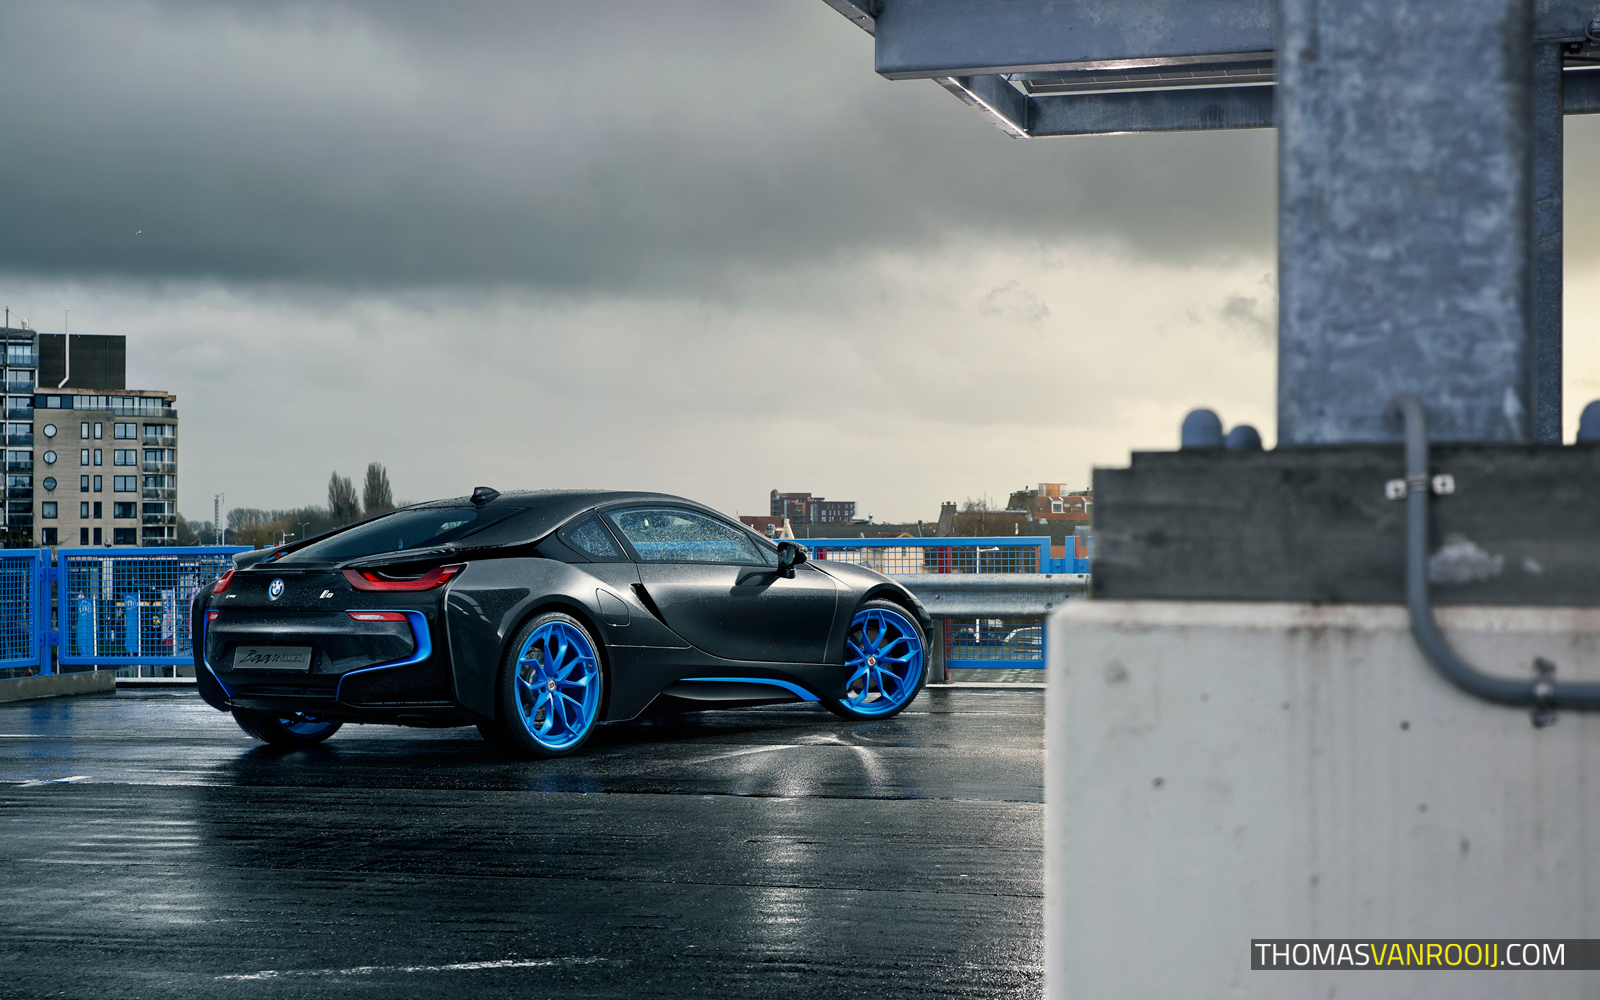 4_Thomas van Rooij Photography Fotografie BMW i8